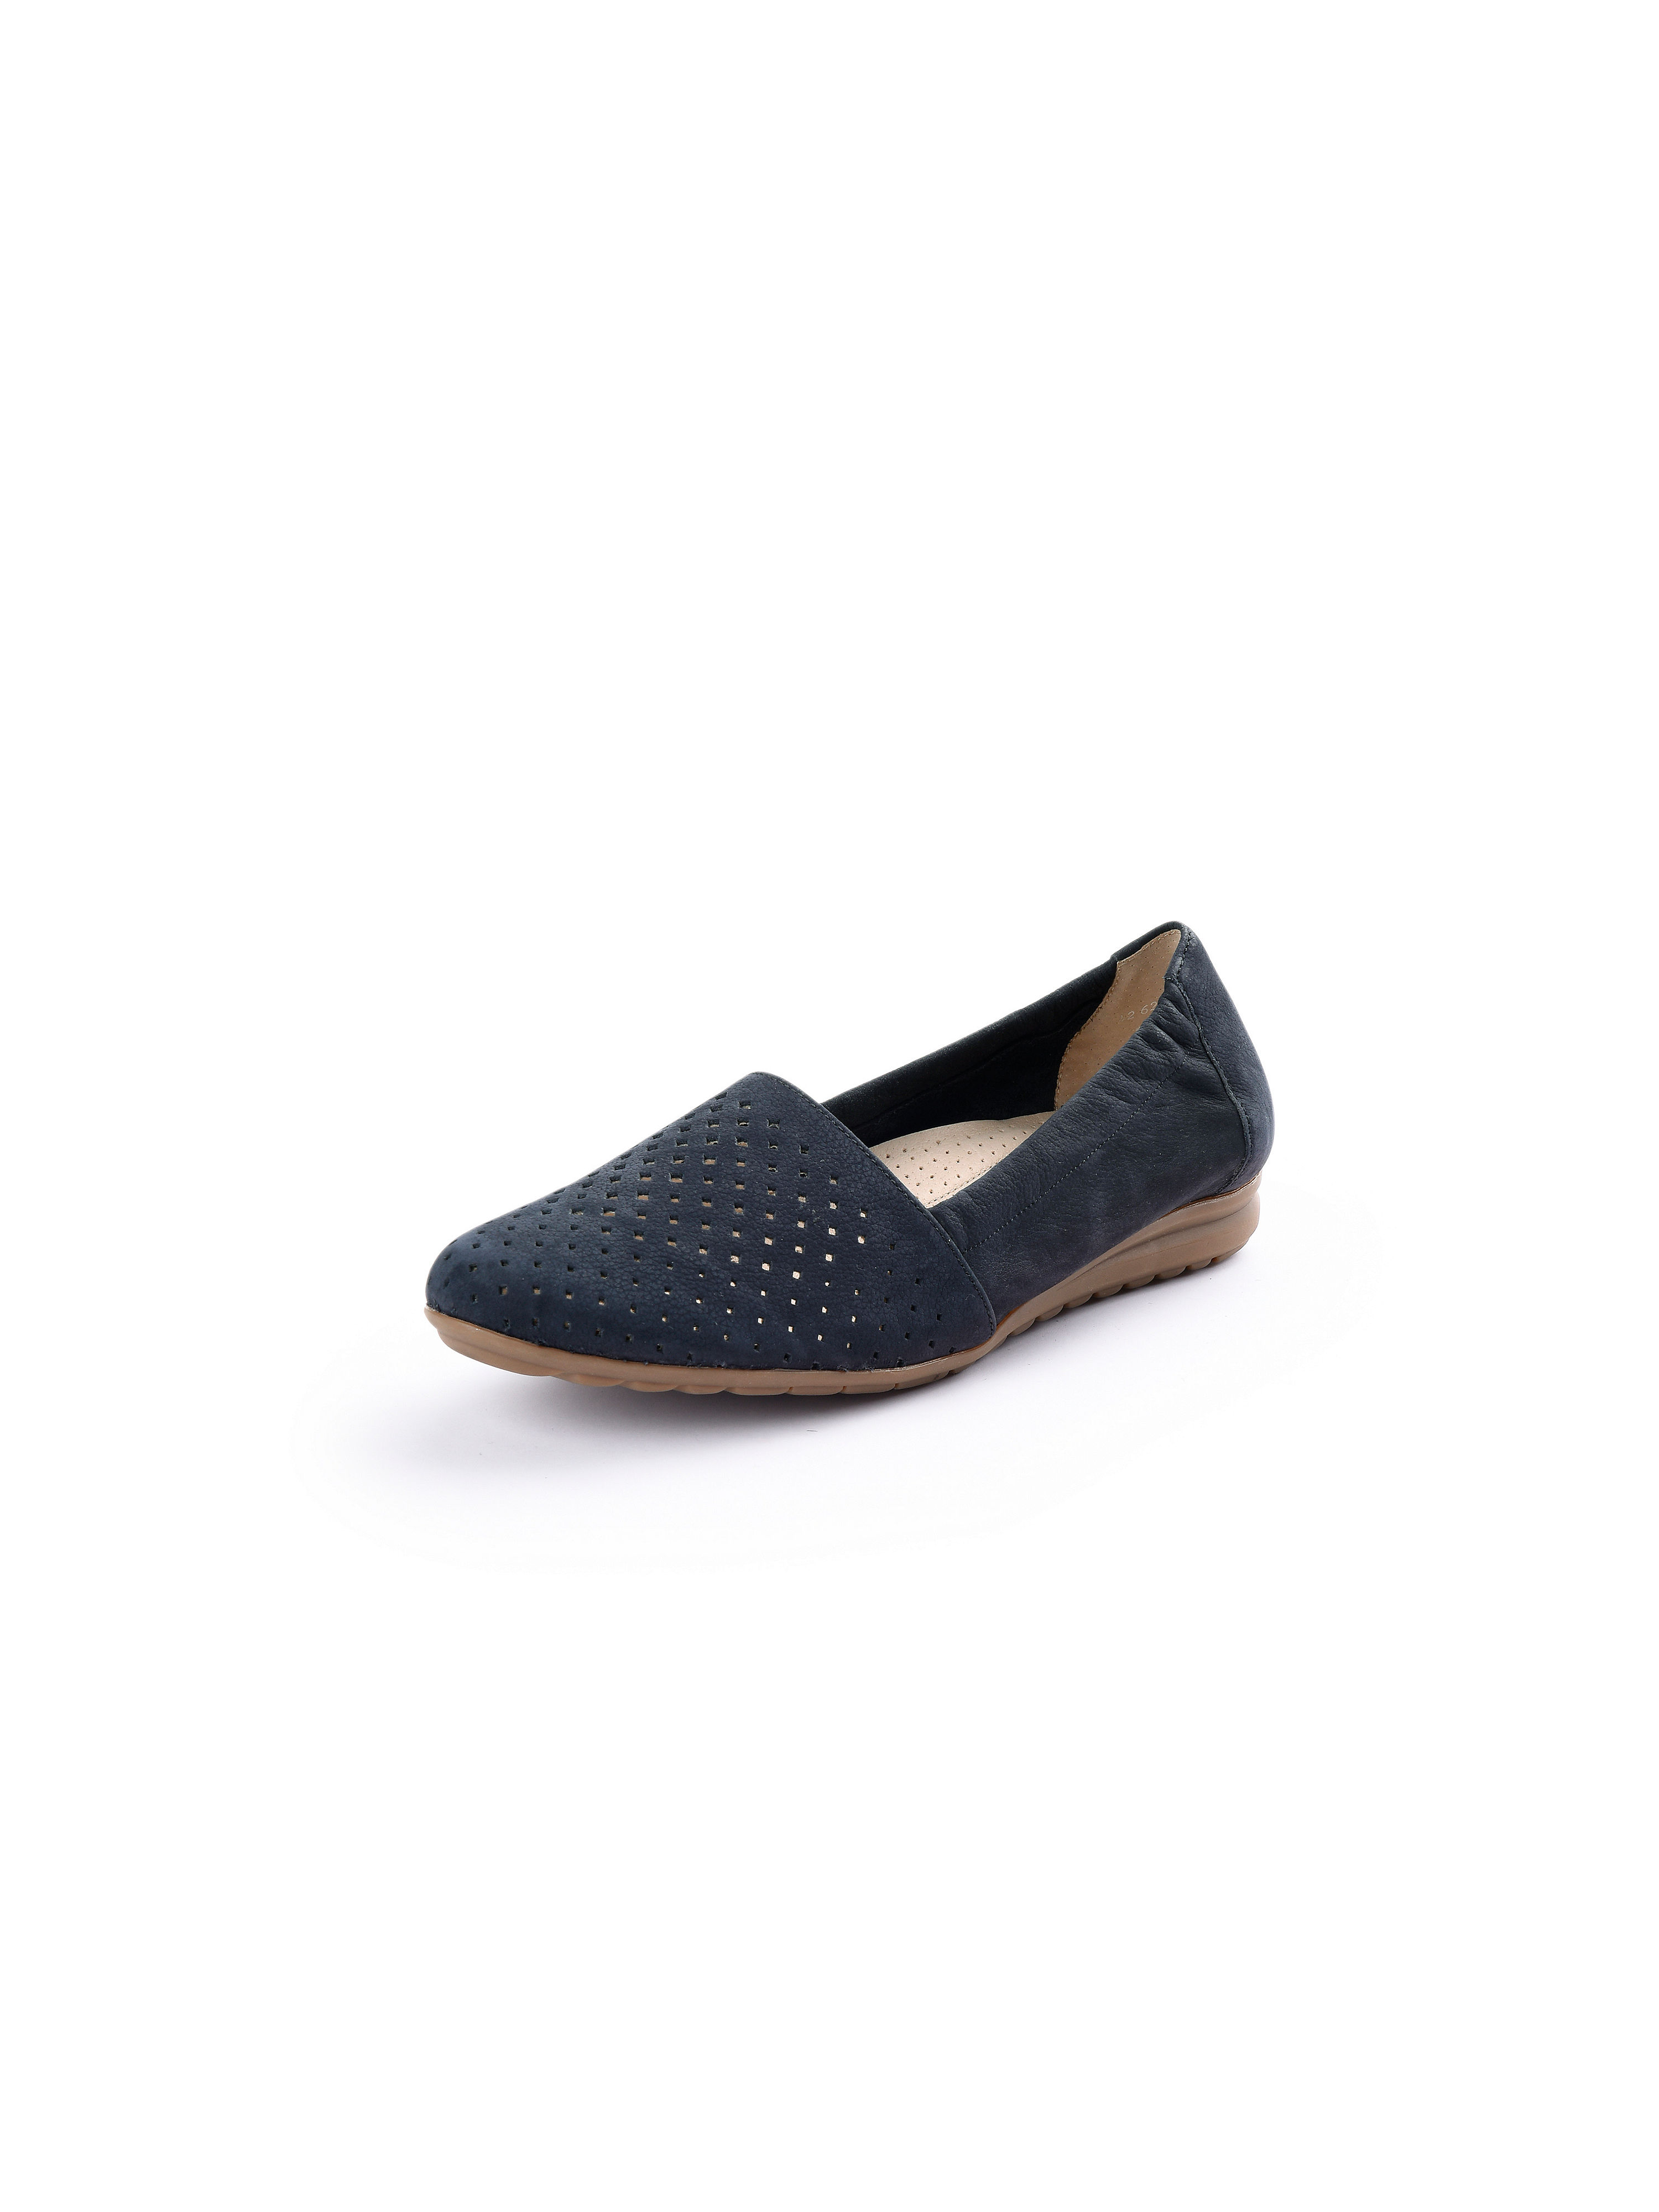 Loafers from Gabor blue